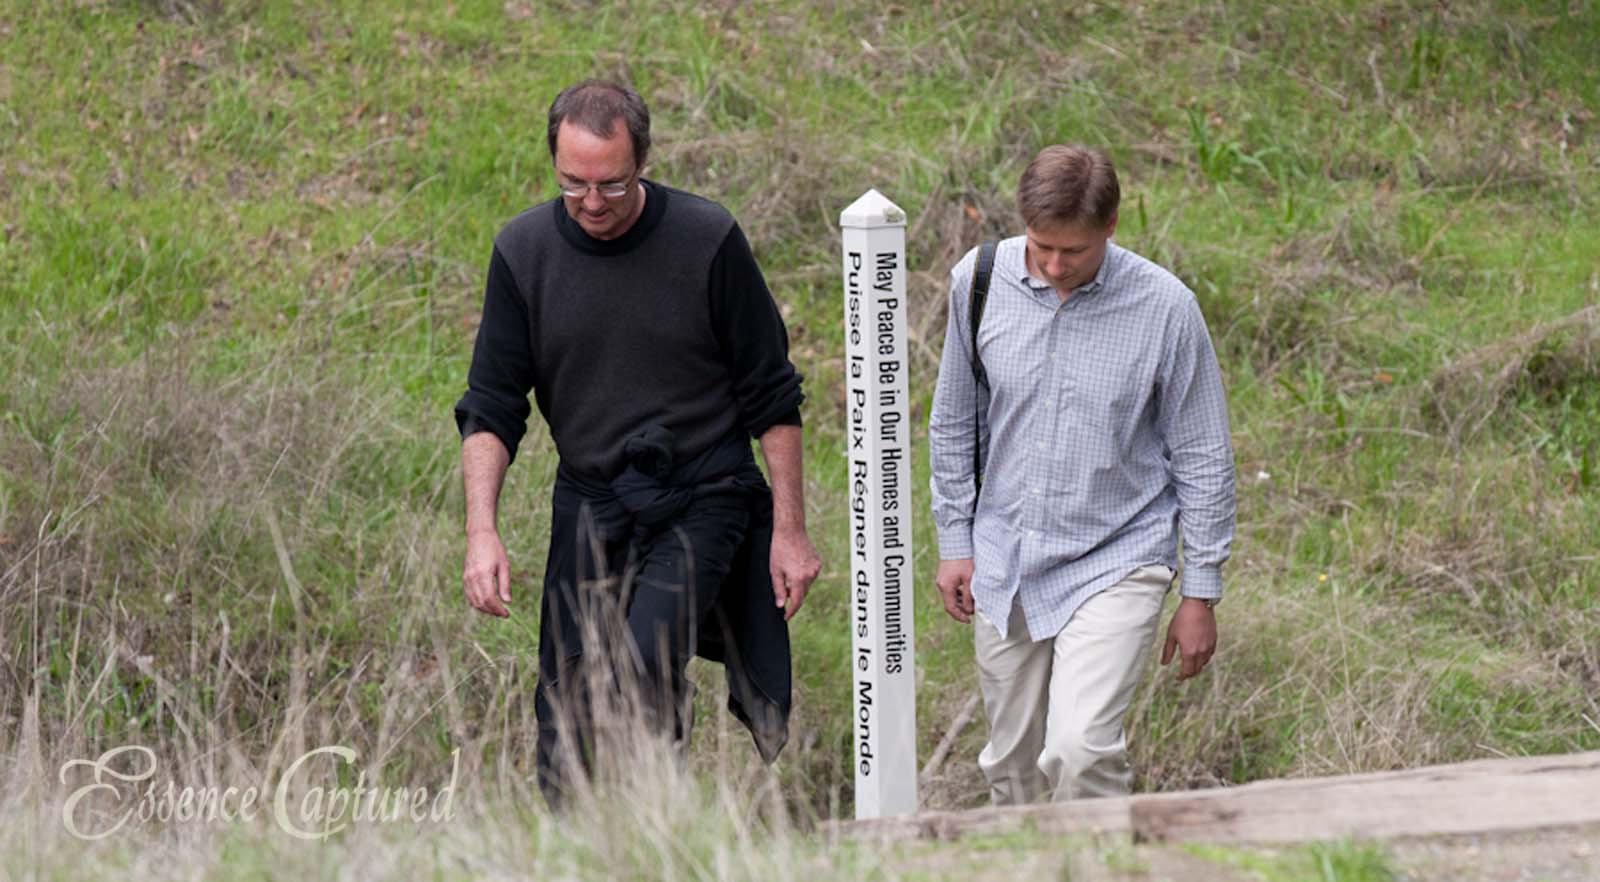 two men walking on trail at Earthrise may peace be in our homes and communities